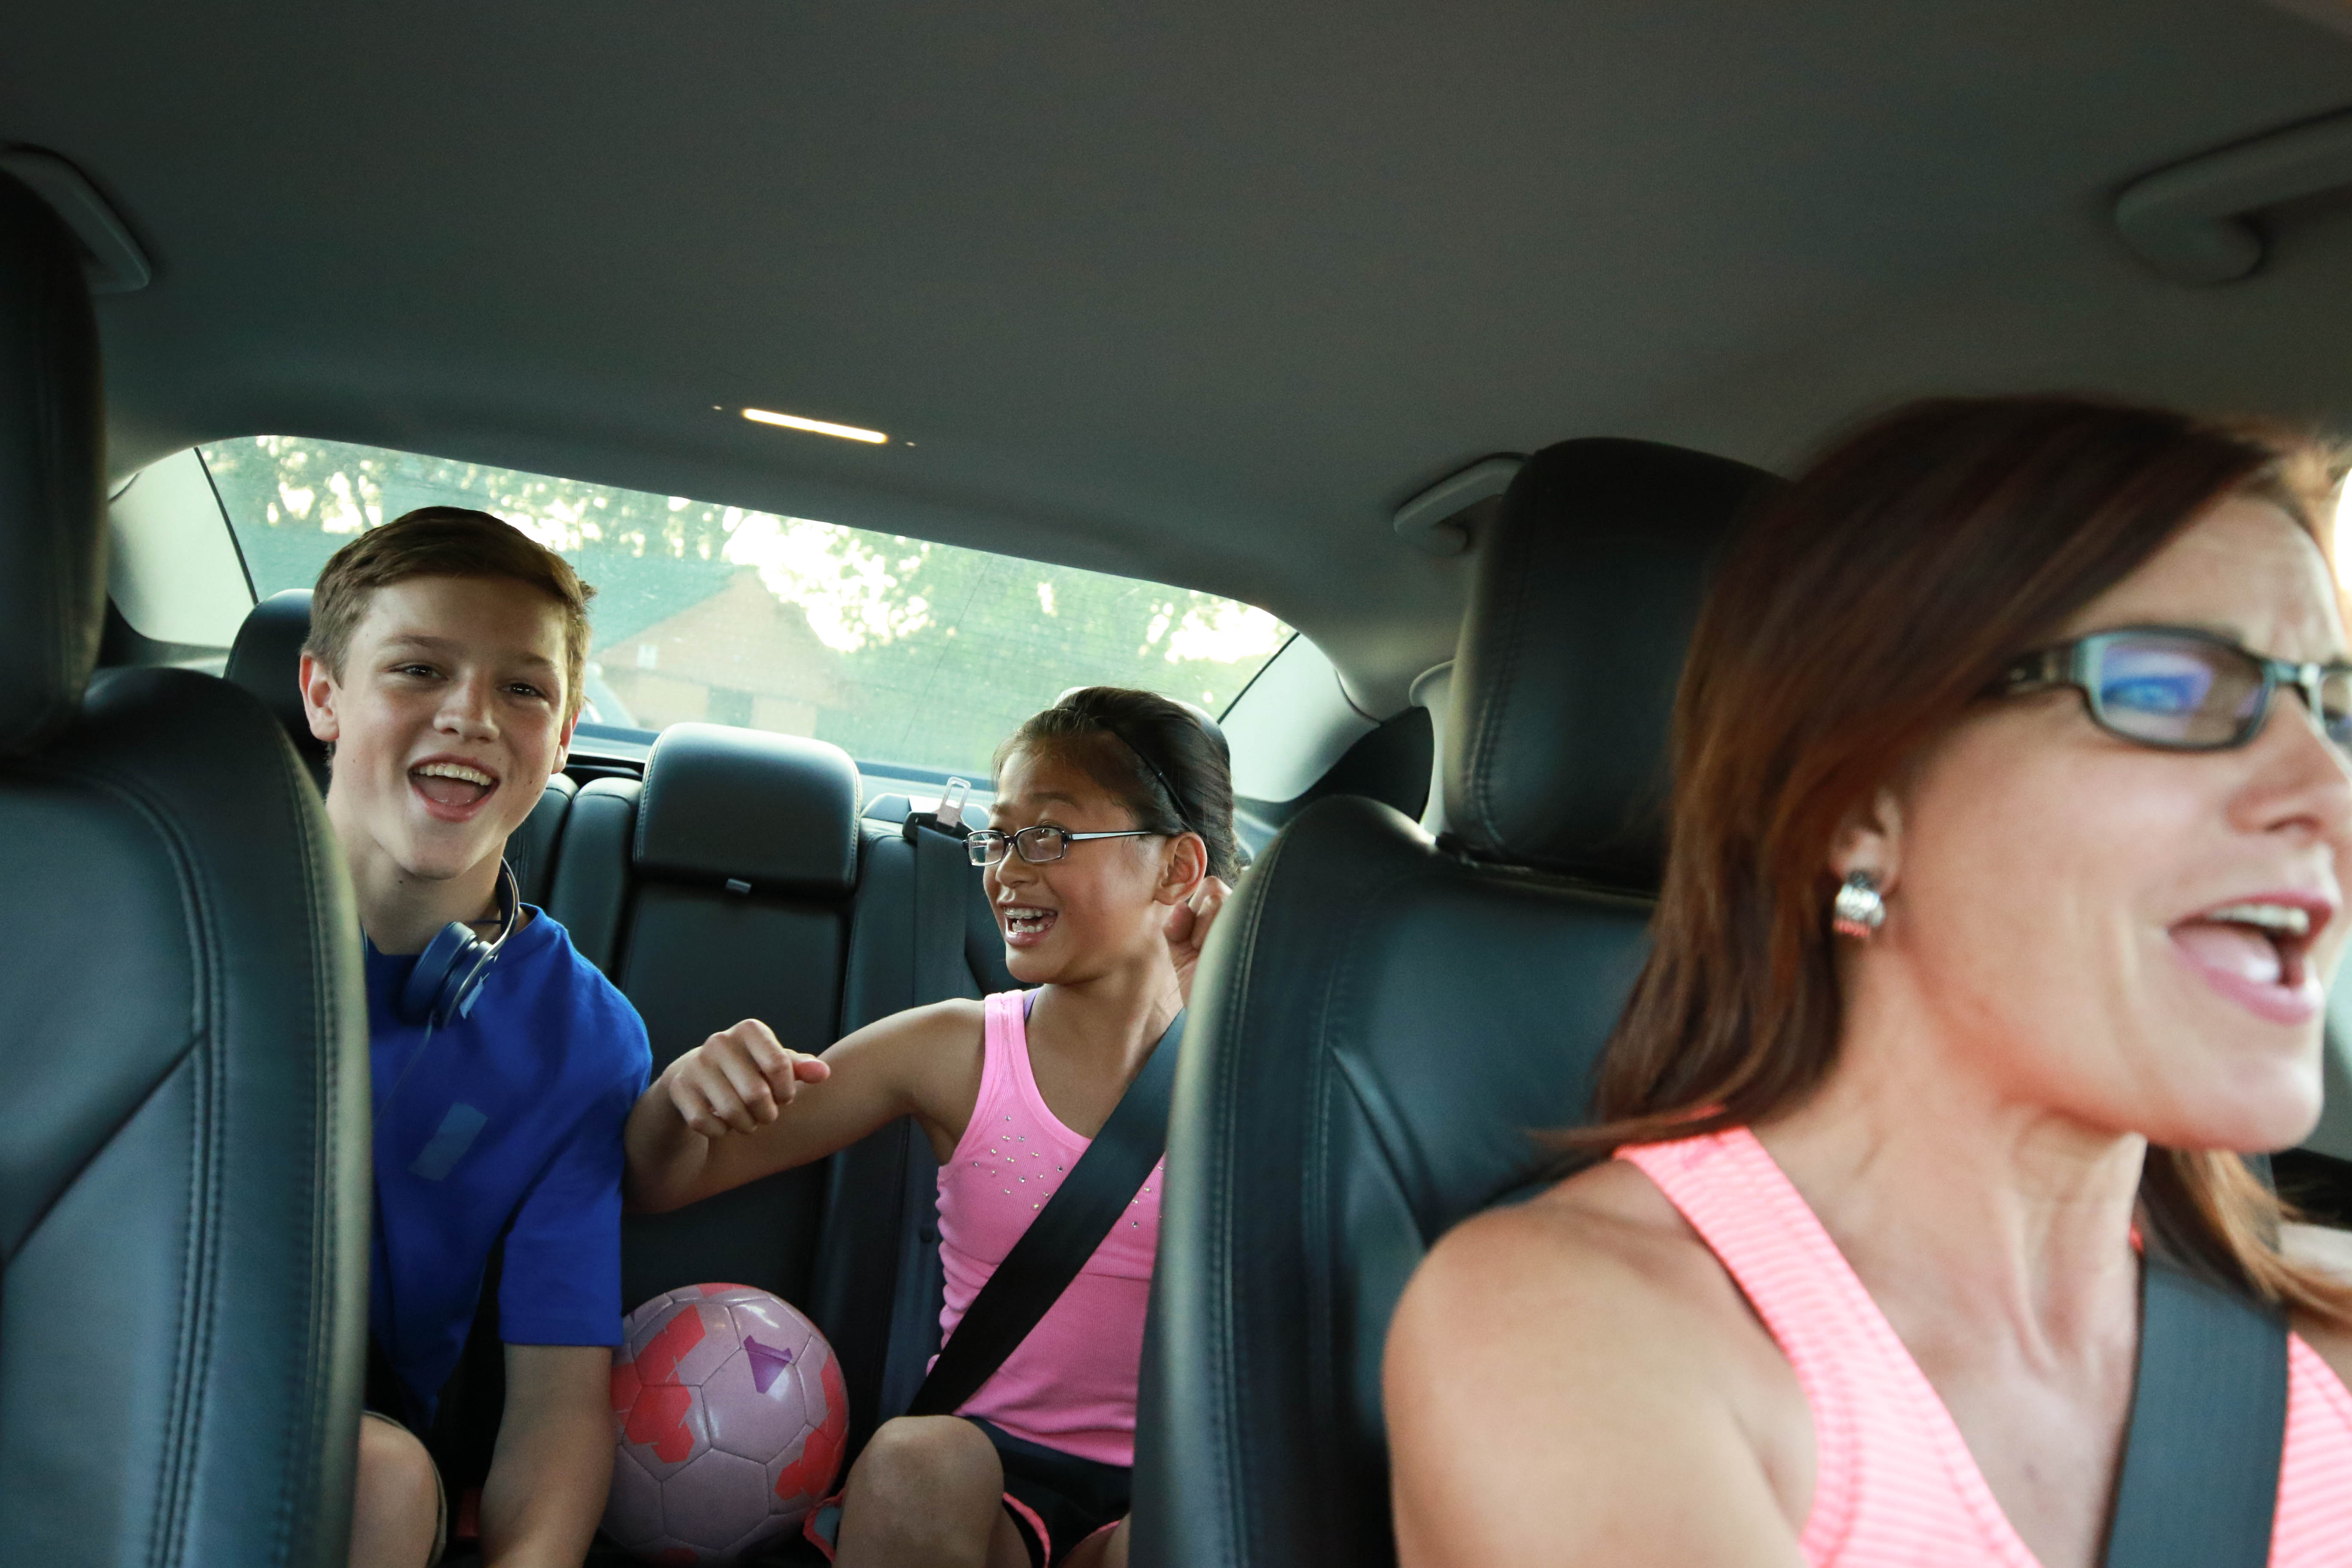 Mom with kids in car carpooling